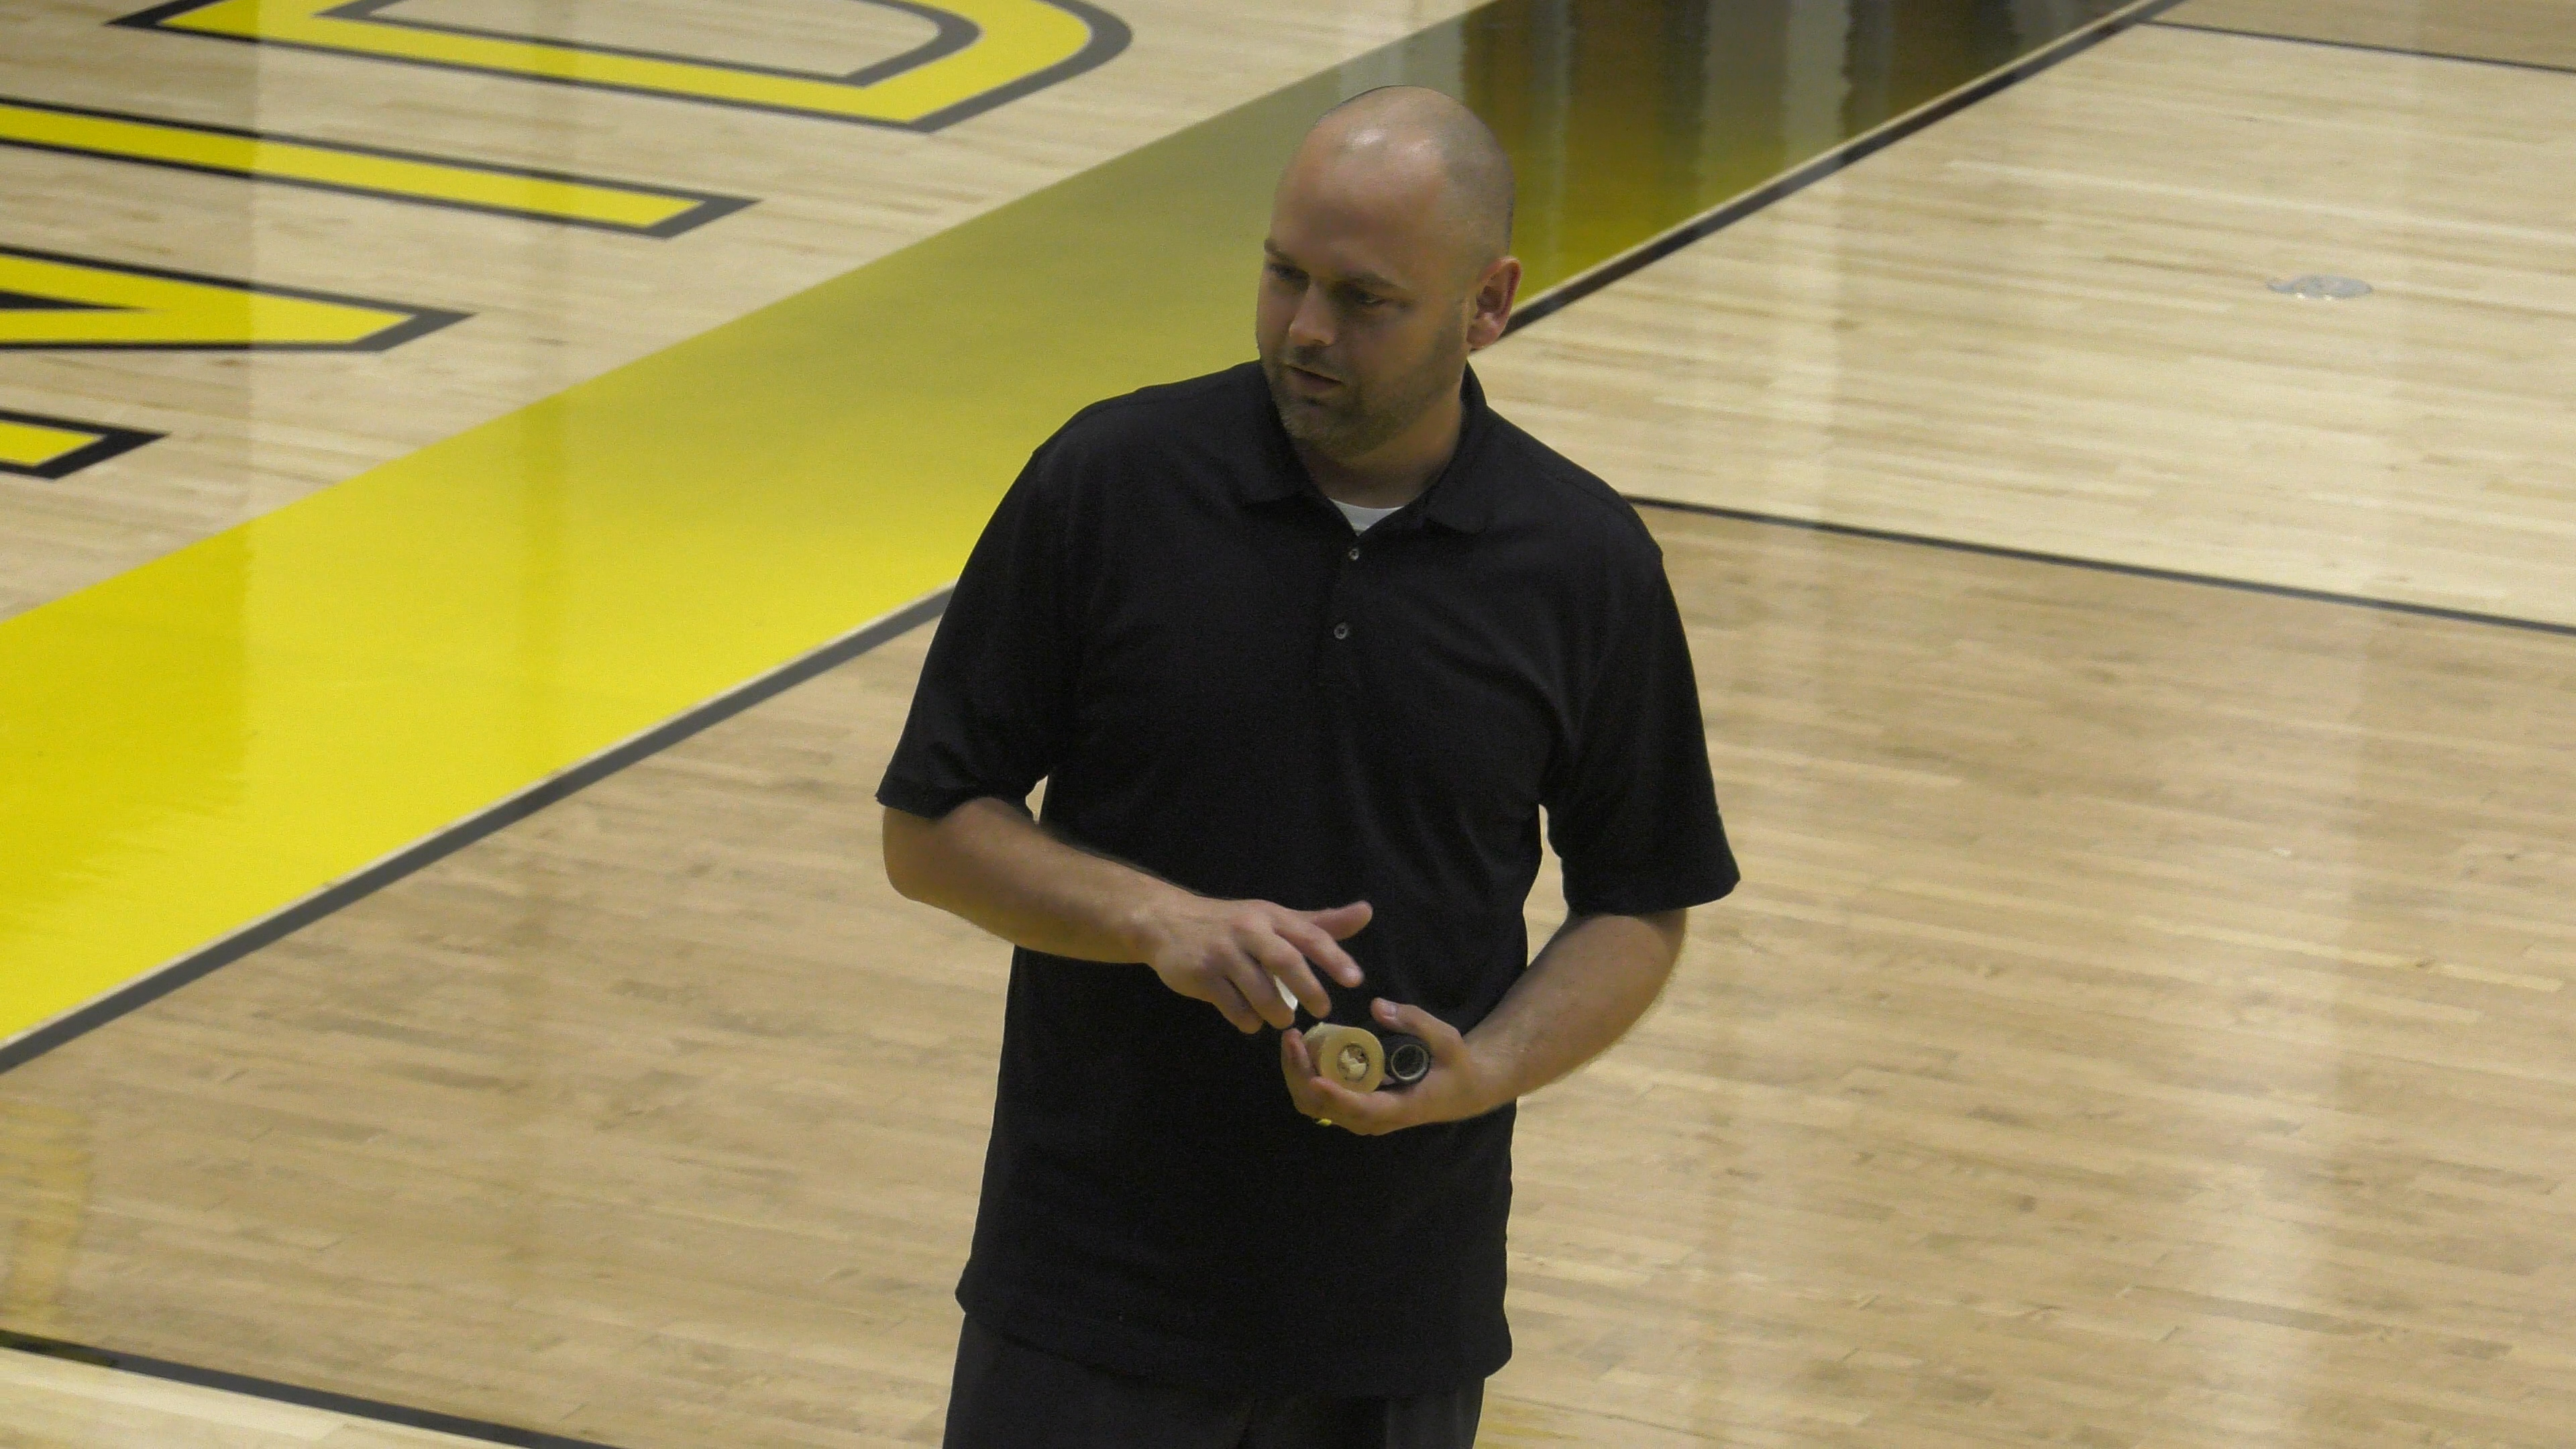 Dunton named Snider volleyball coach